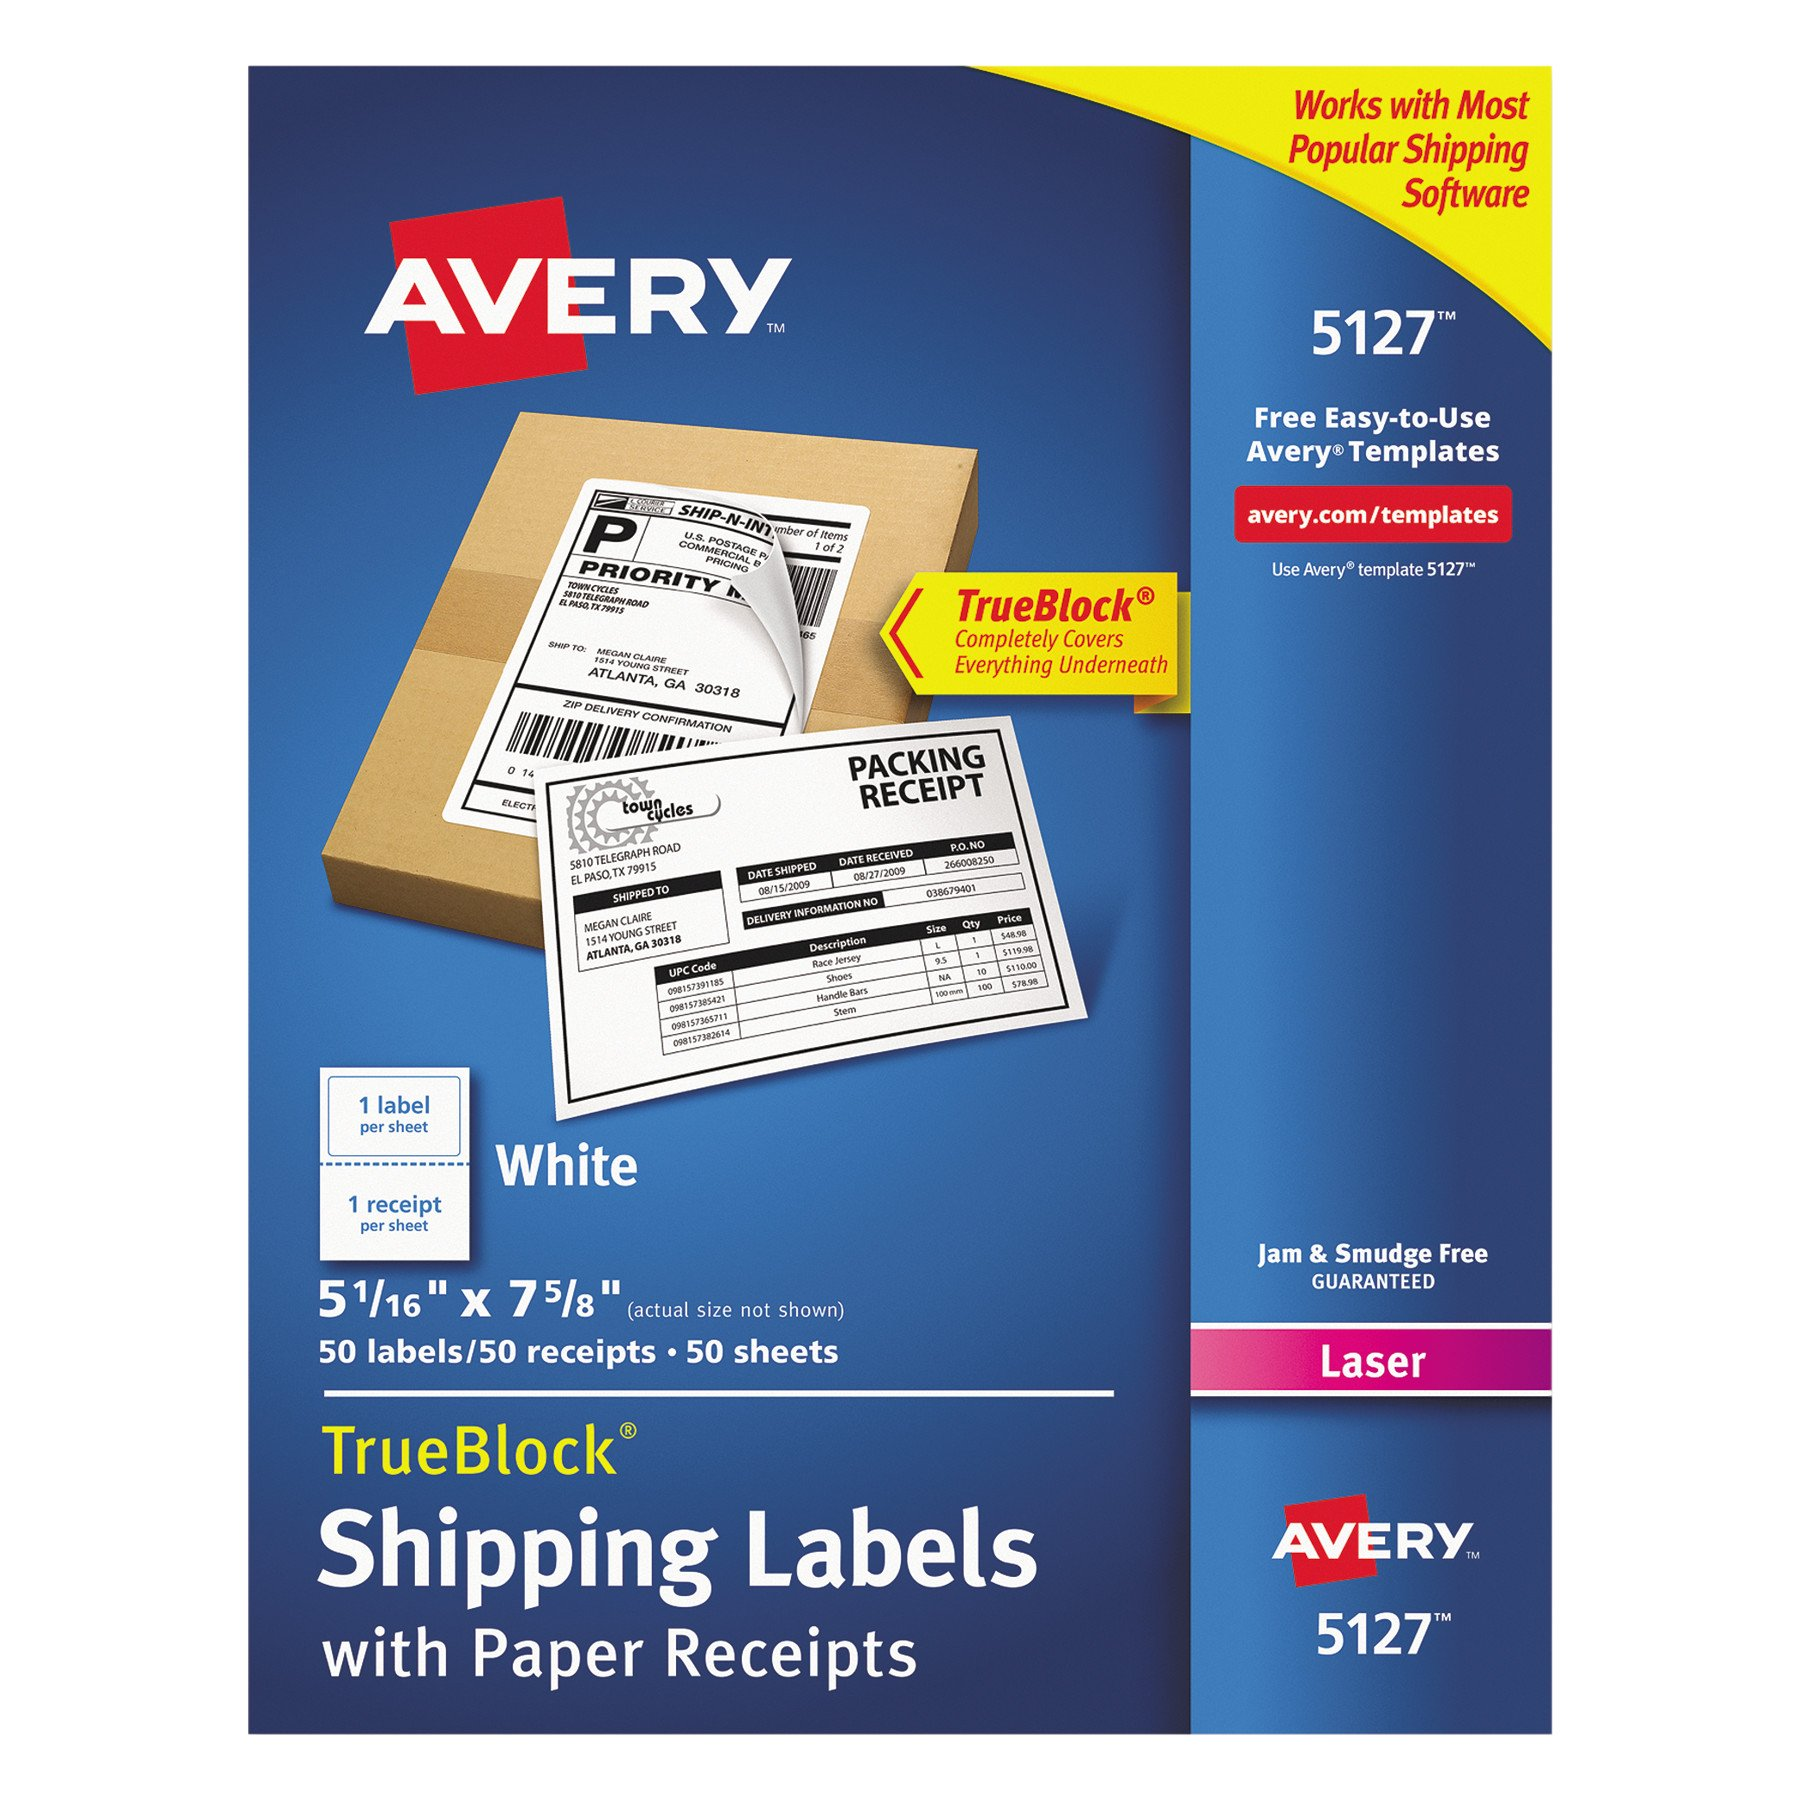 Avery Shipping Labels w/Paper Receipts and TrueBlock Technology for Laser Printers 5-1/16 x 7-5/8, Pack of 50 (5127) by AVERY